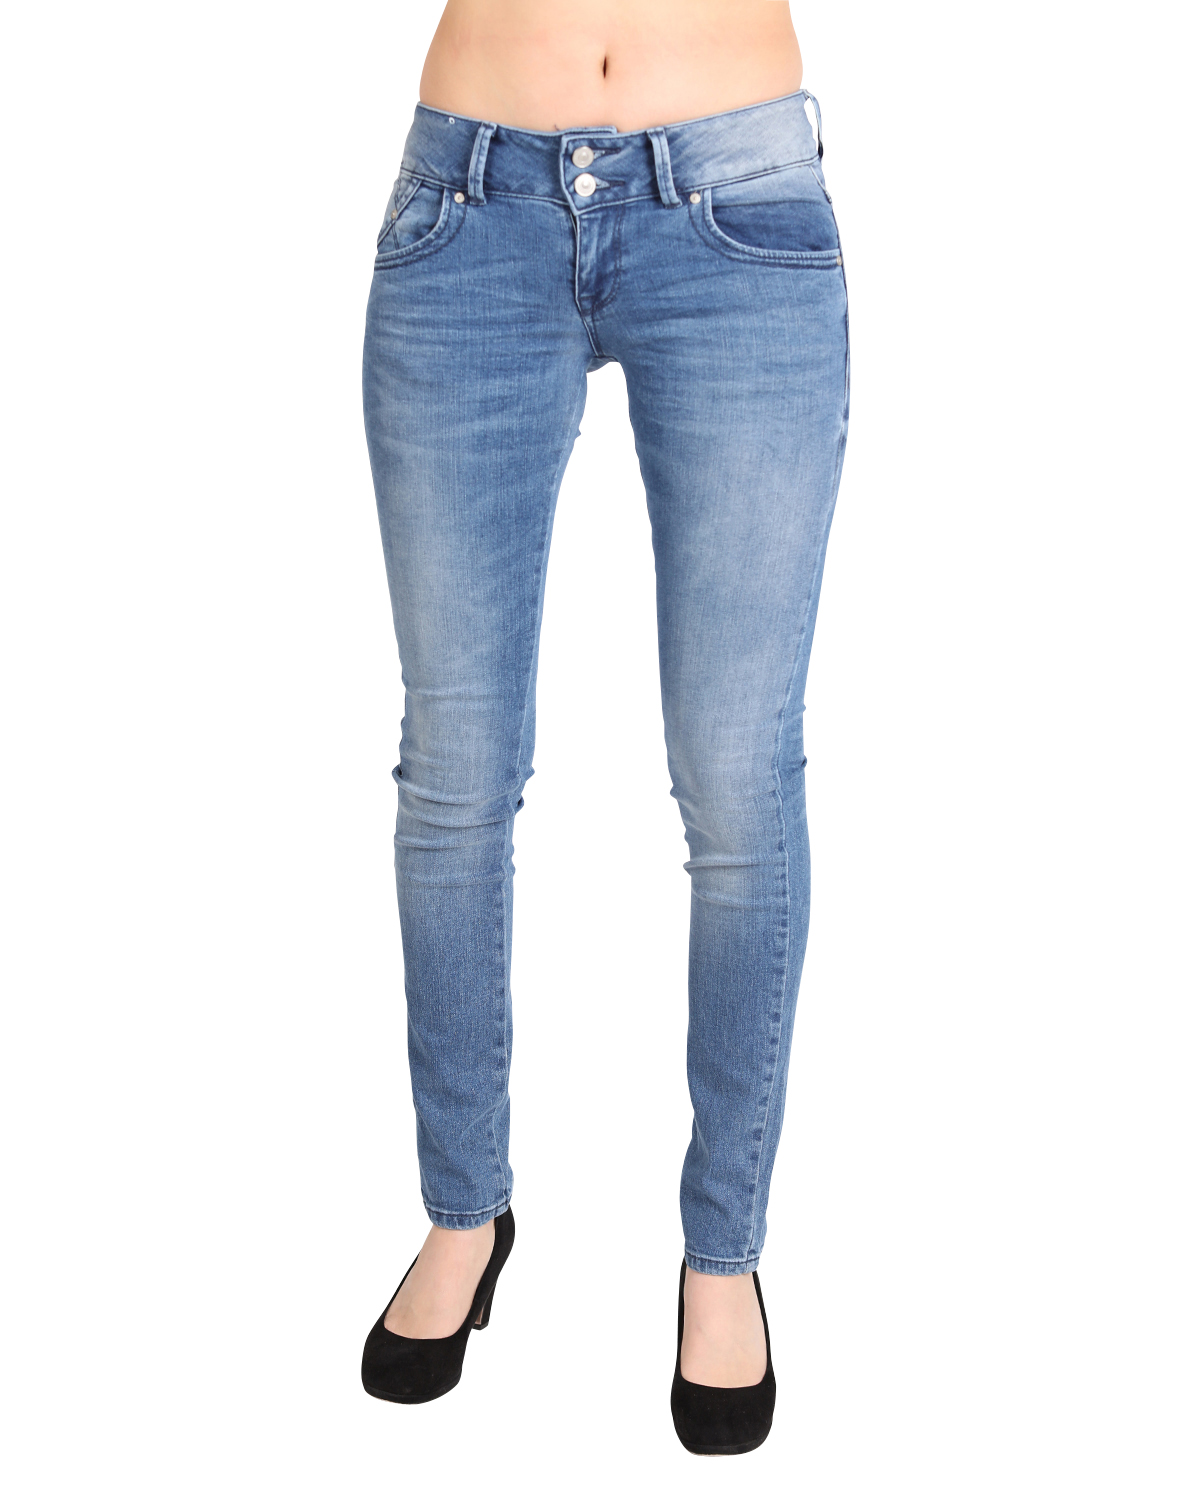 LTB Stretch Jeans 5065 51600 MOLLY Erlina Wash